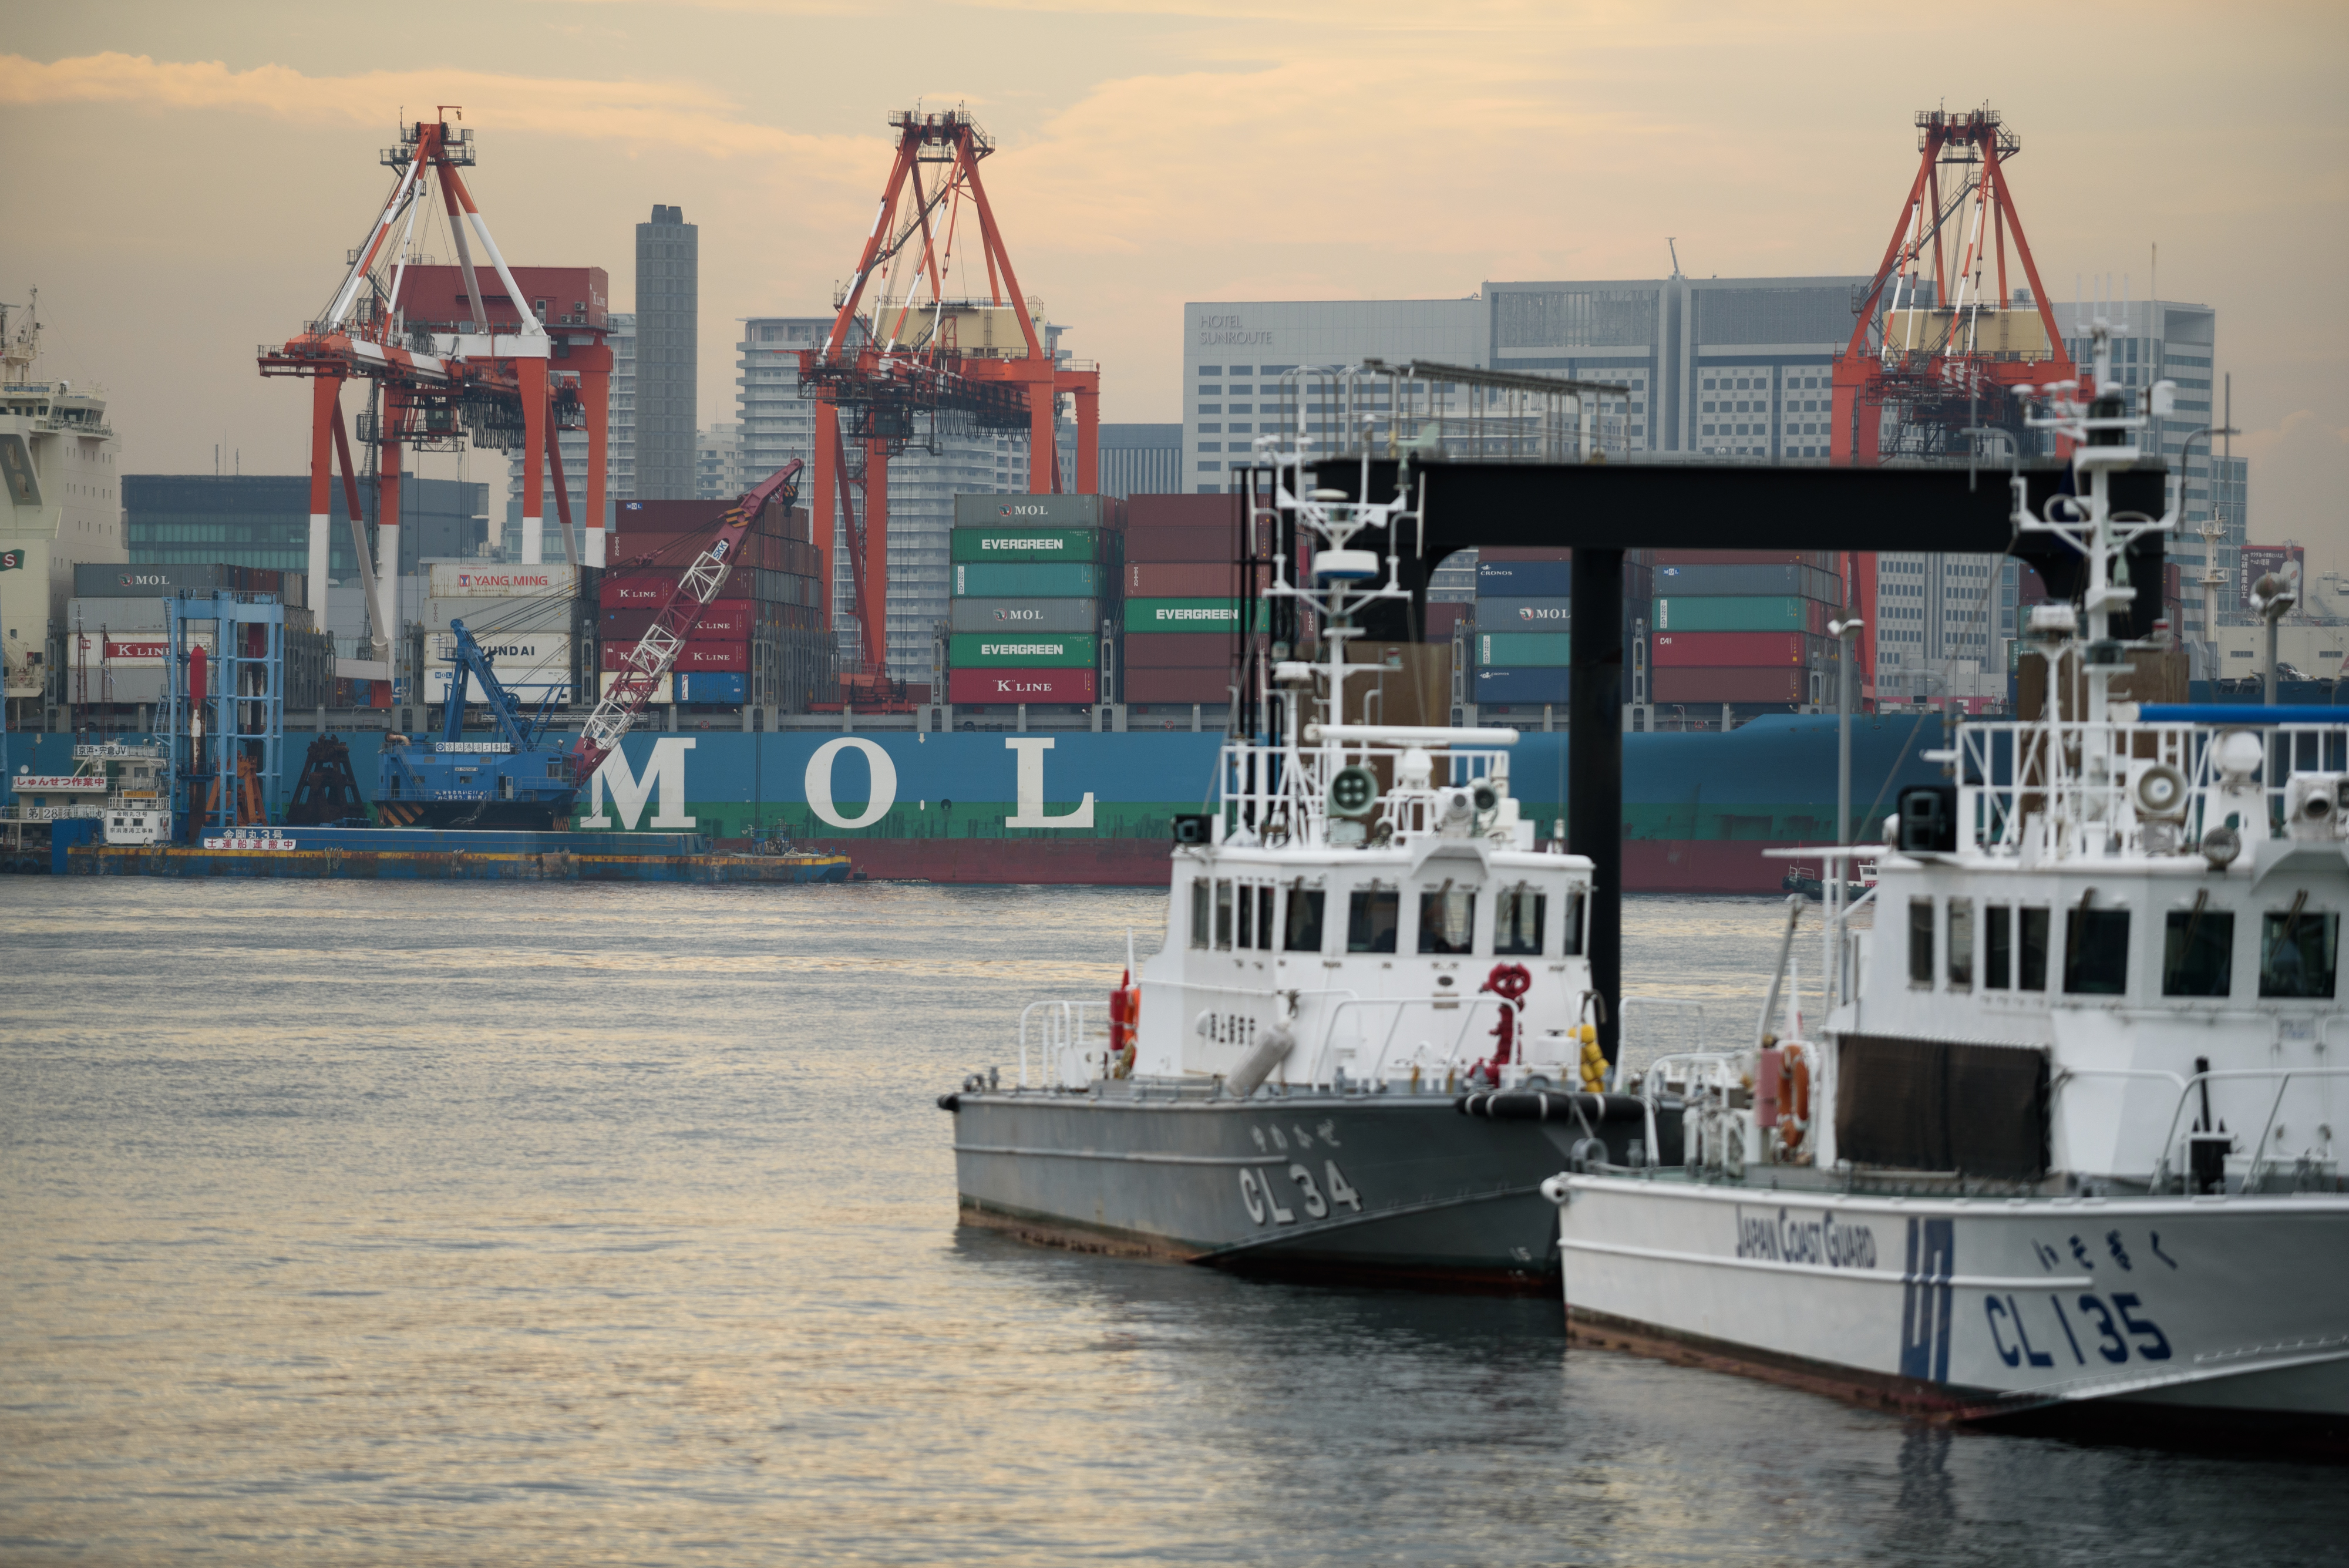 Nippon Yusen KK and Mitsui O.S.K. Container Ships As Three Shippers to Merge Container Business